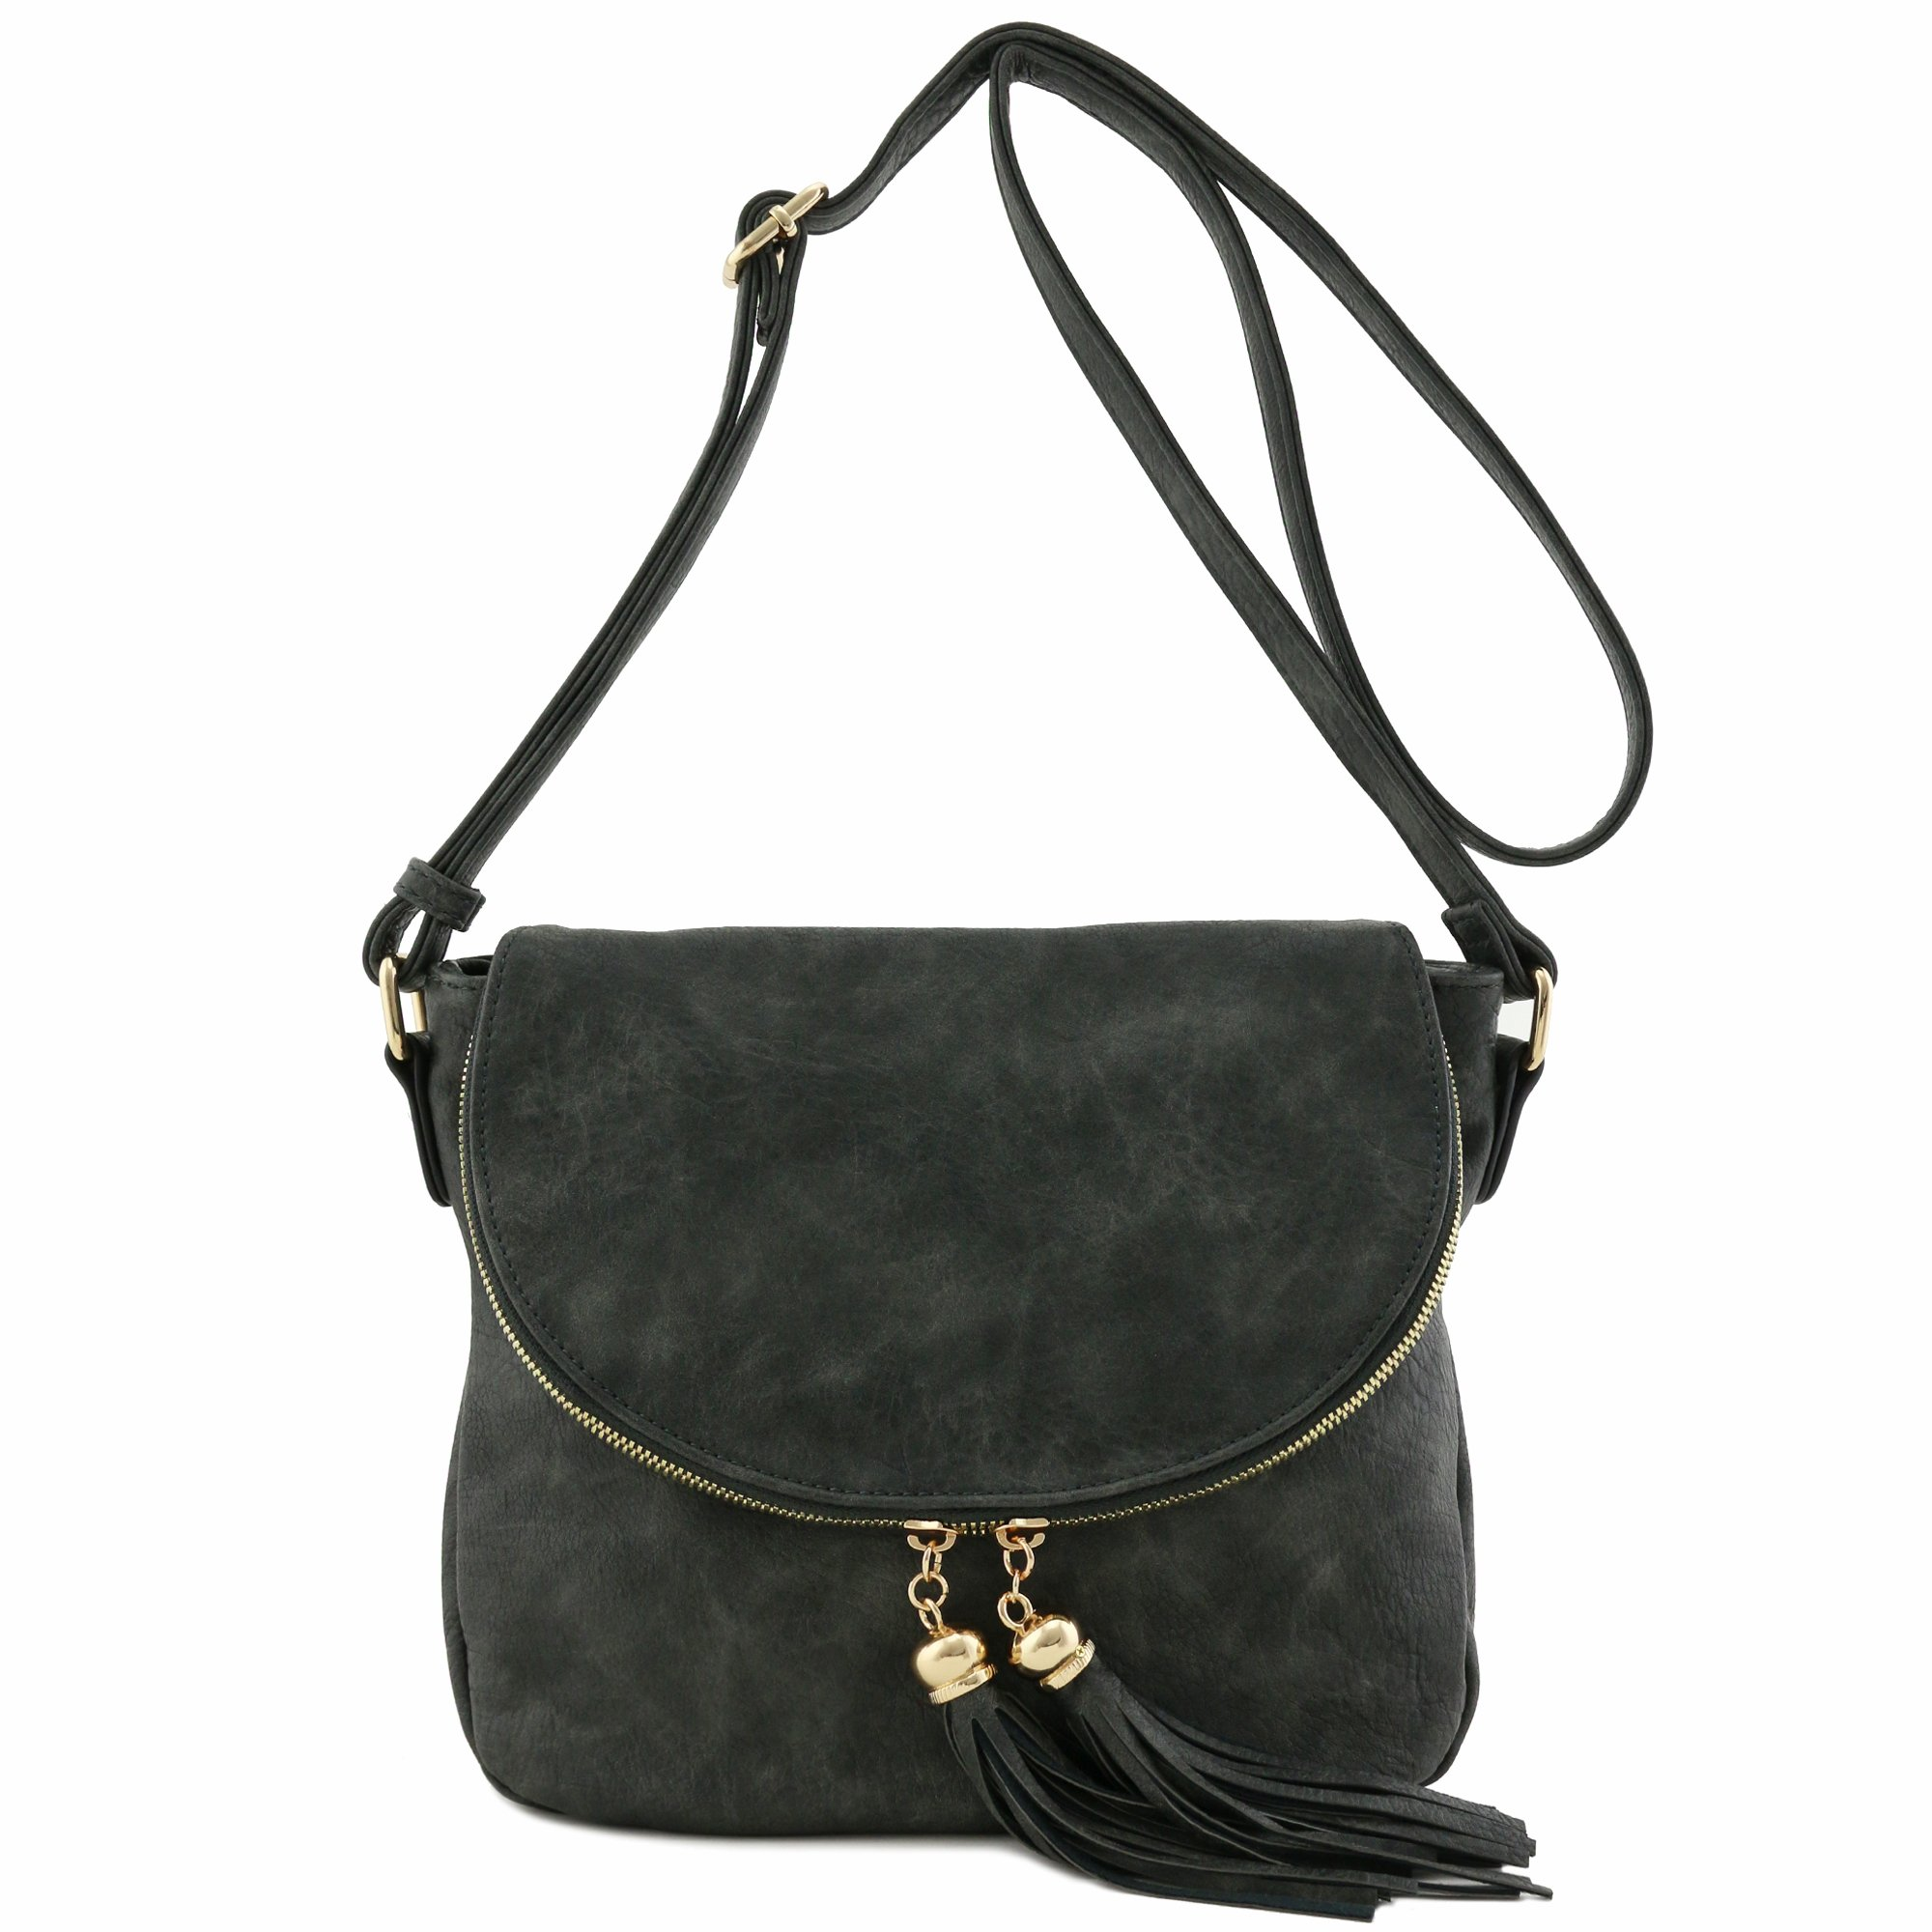 Tassel Accent Crossbody Bag with Flap Top (Charcoal Grey)